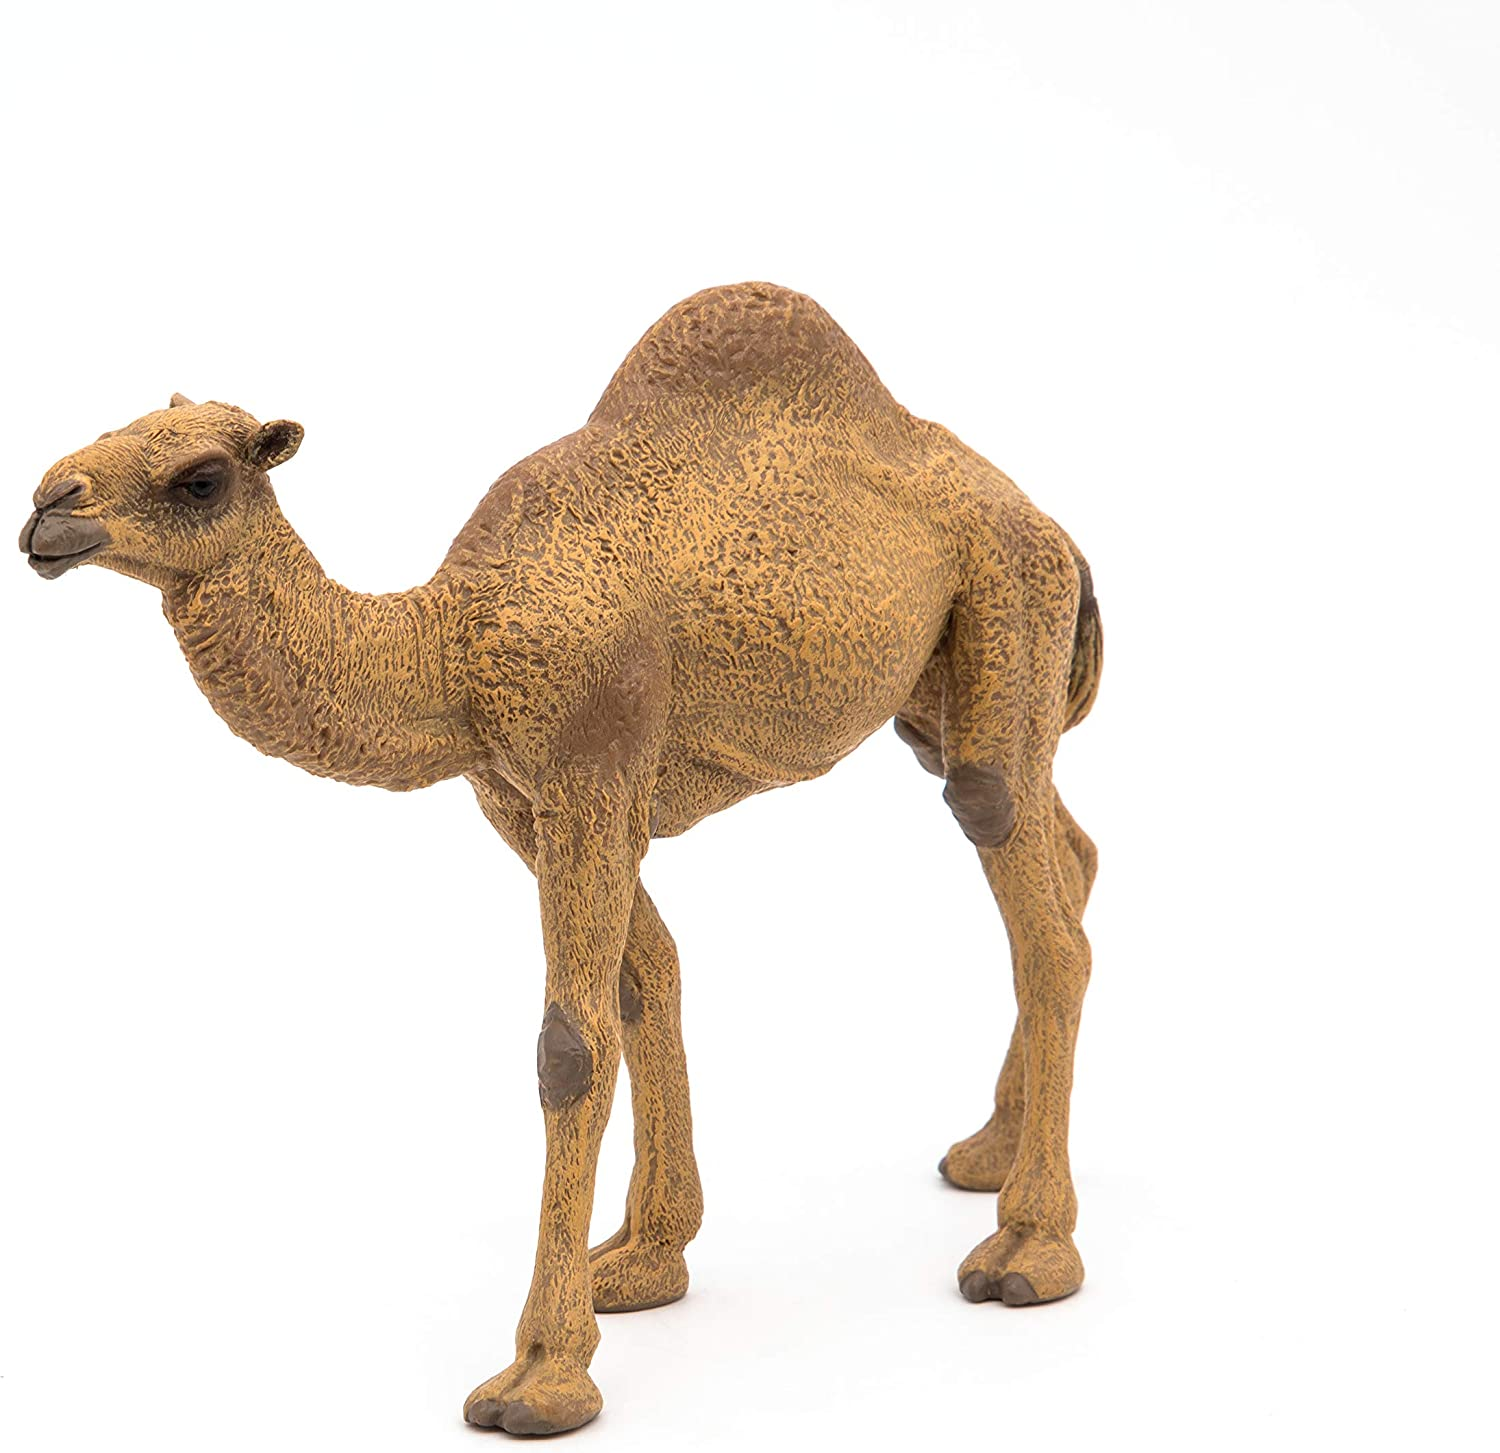 Dromedary Camel 5 7//8in Wild Animals Papo 50151